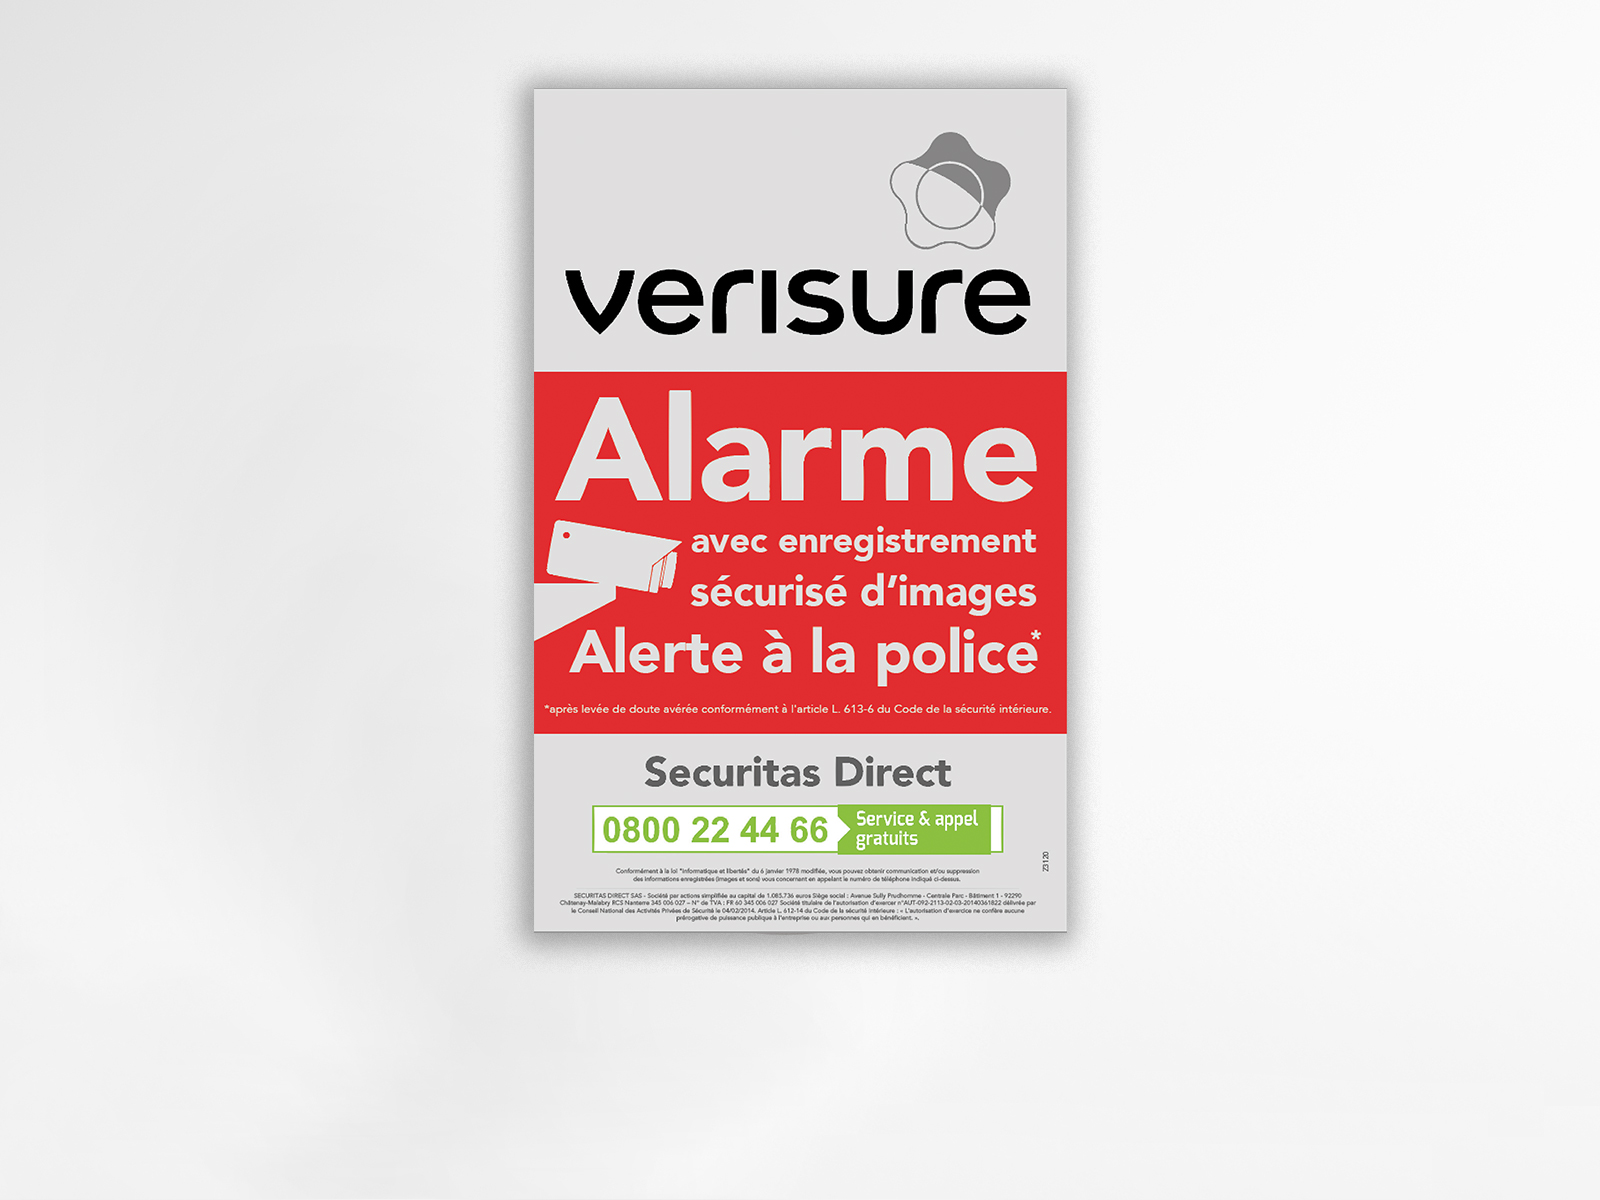 Securitas verisure avis test comparatif alarme